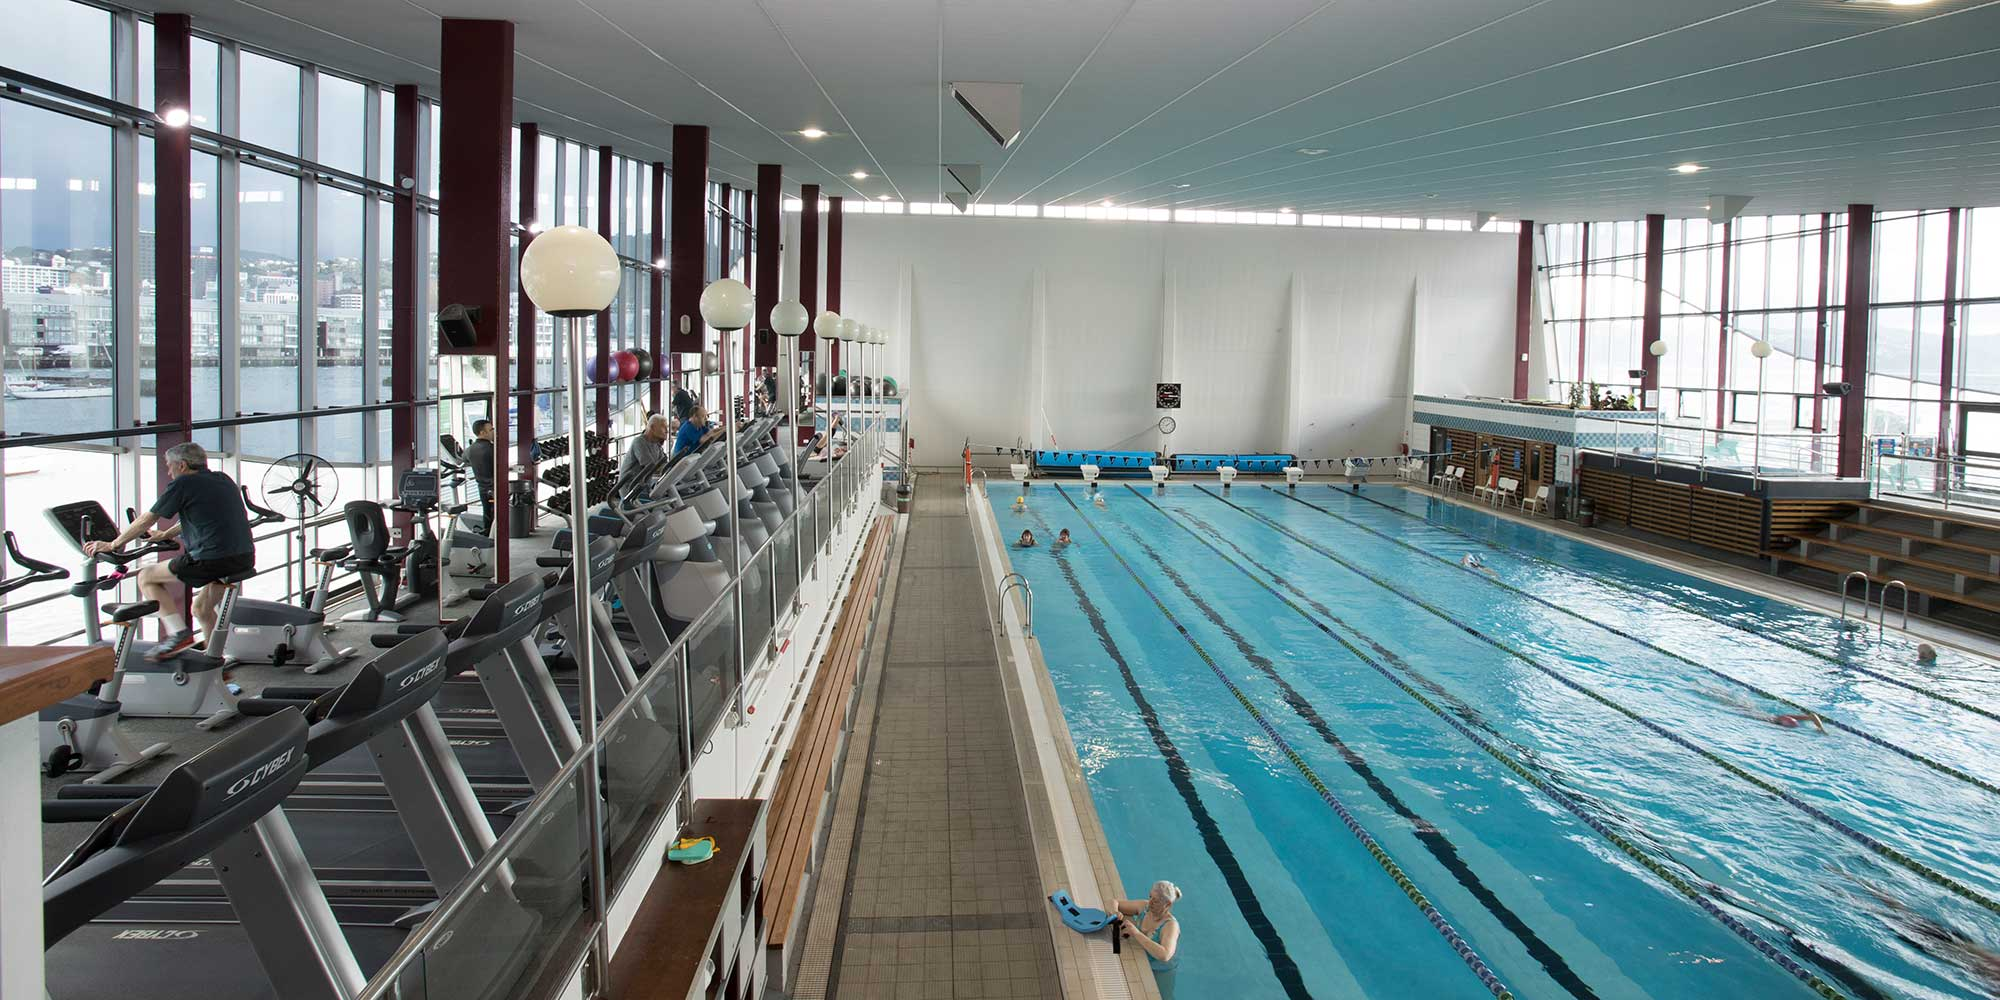 Internal view of the pool at Freyberg Pool & Fitness Centre.